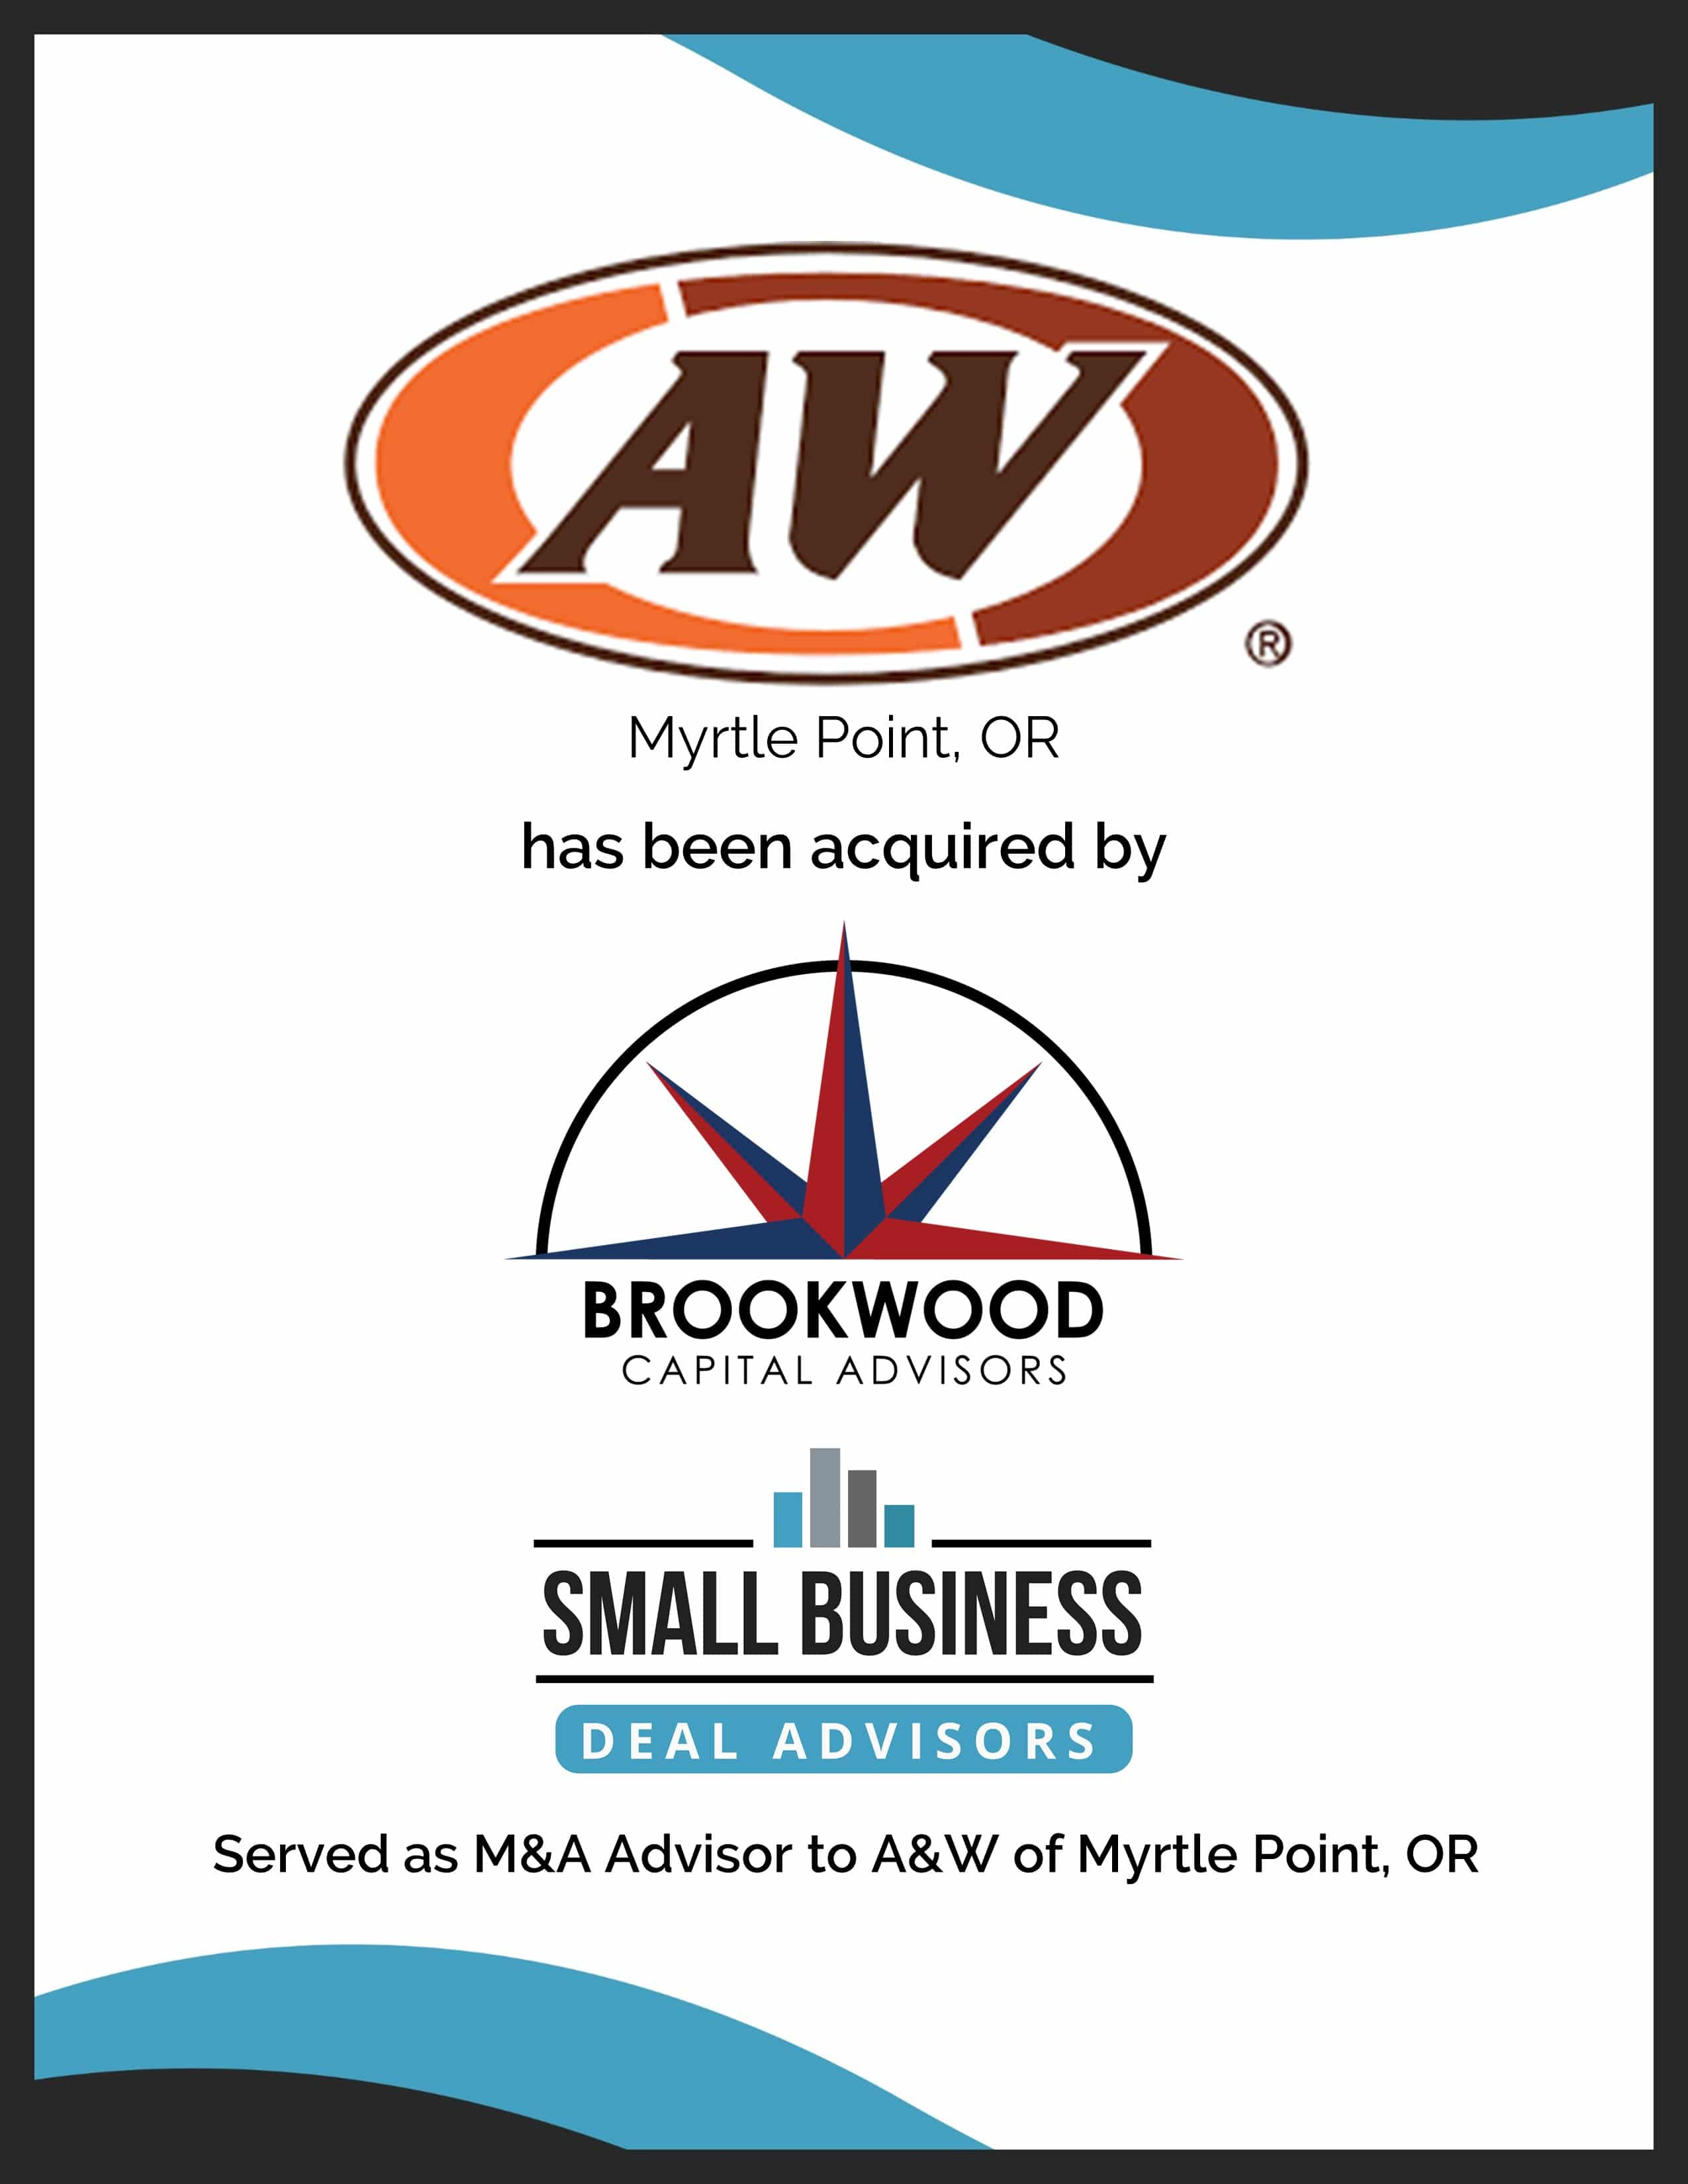 A&W Myrtle Point OR acquired by Brookwood Capital Advisors